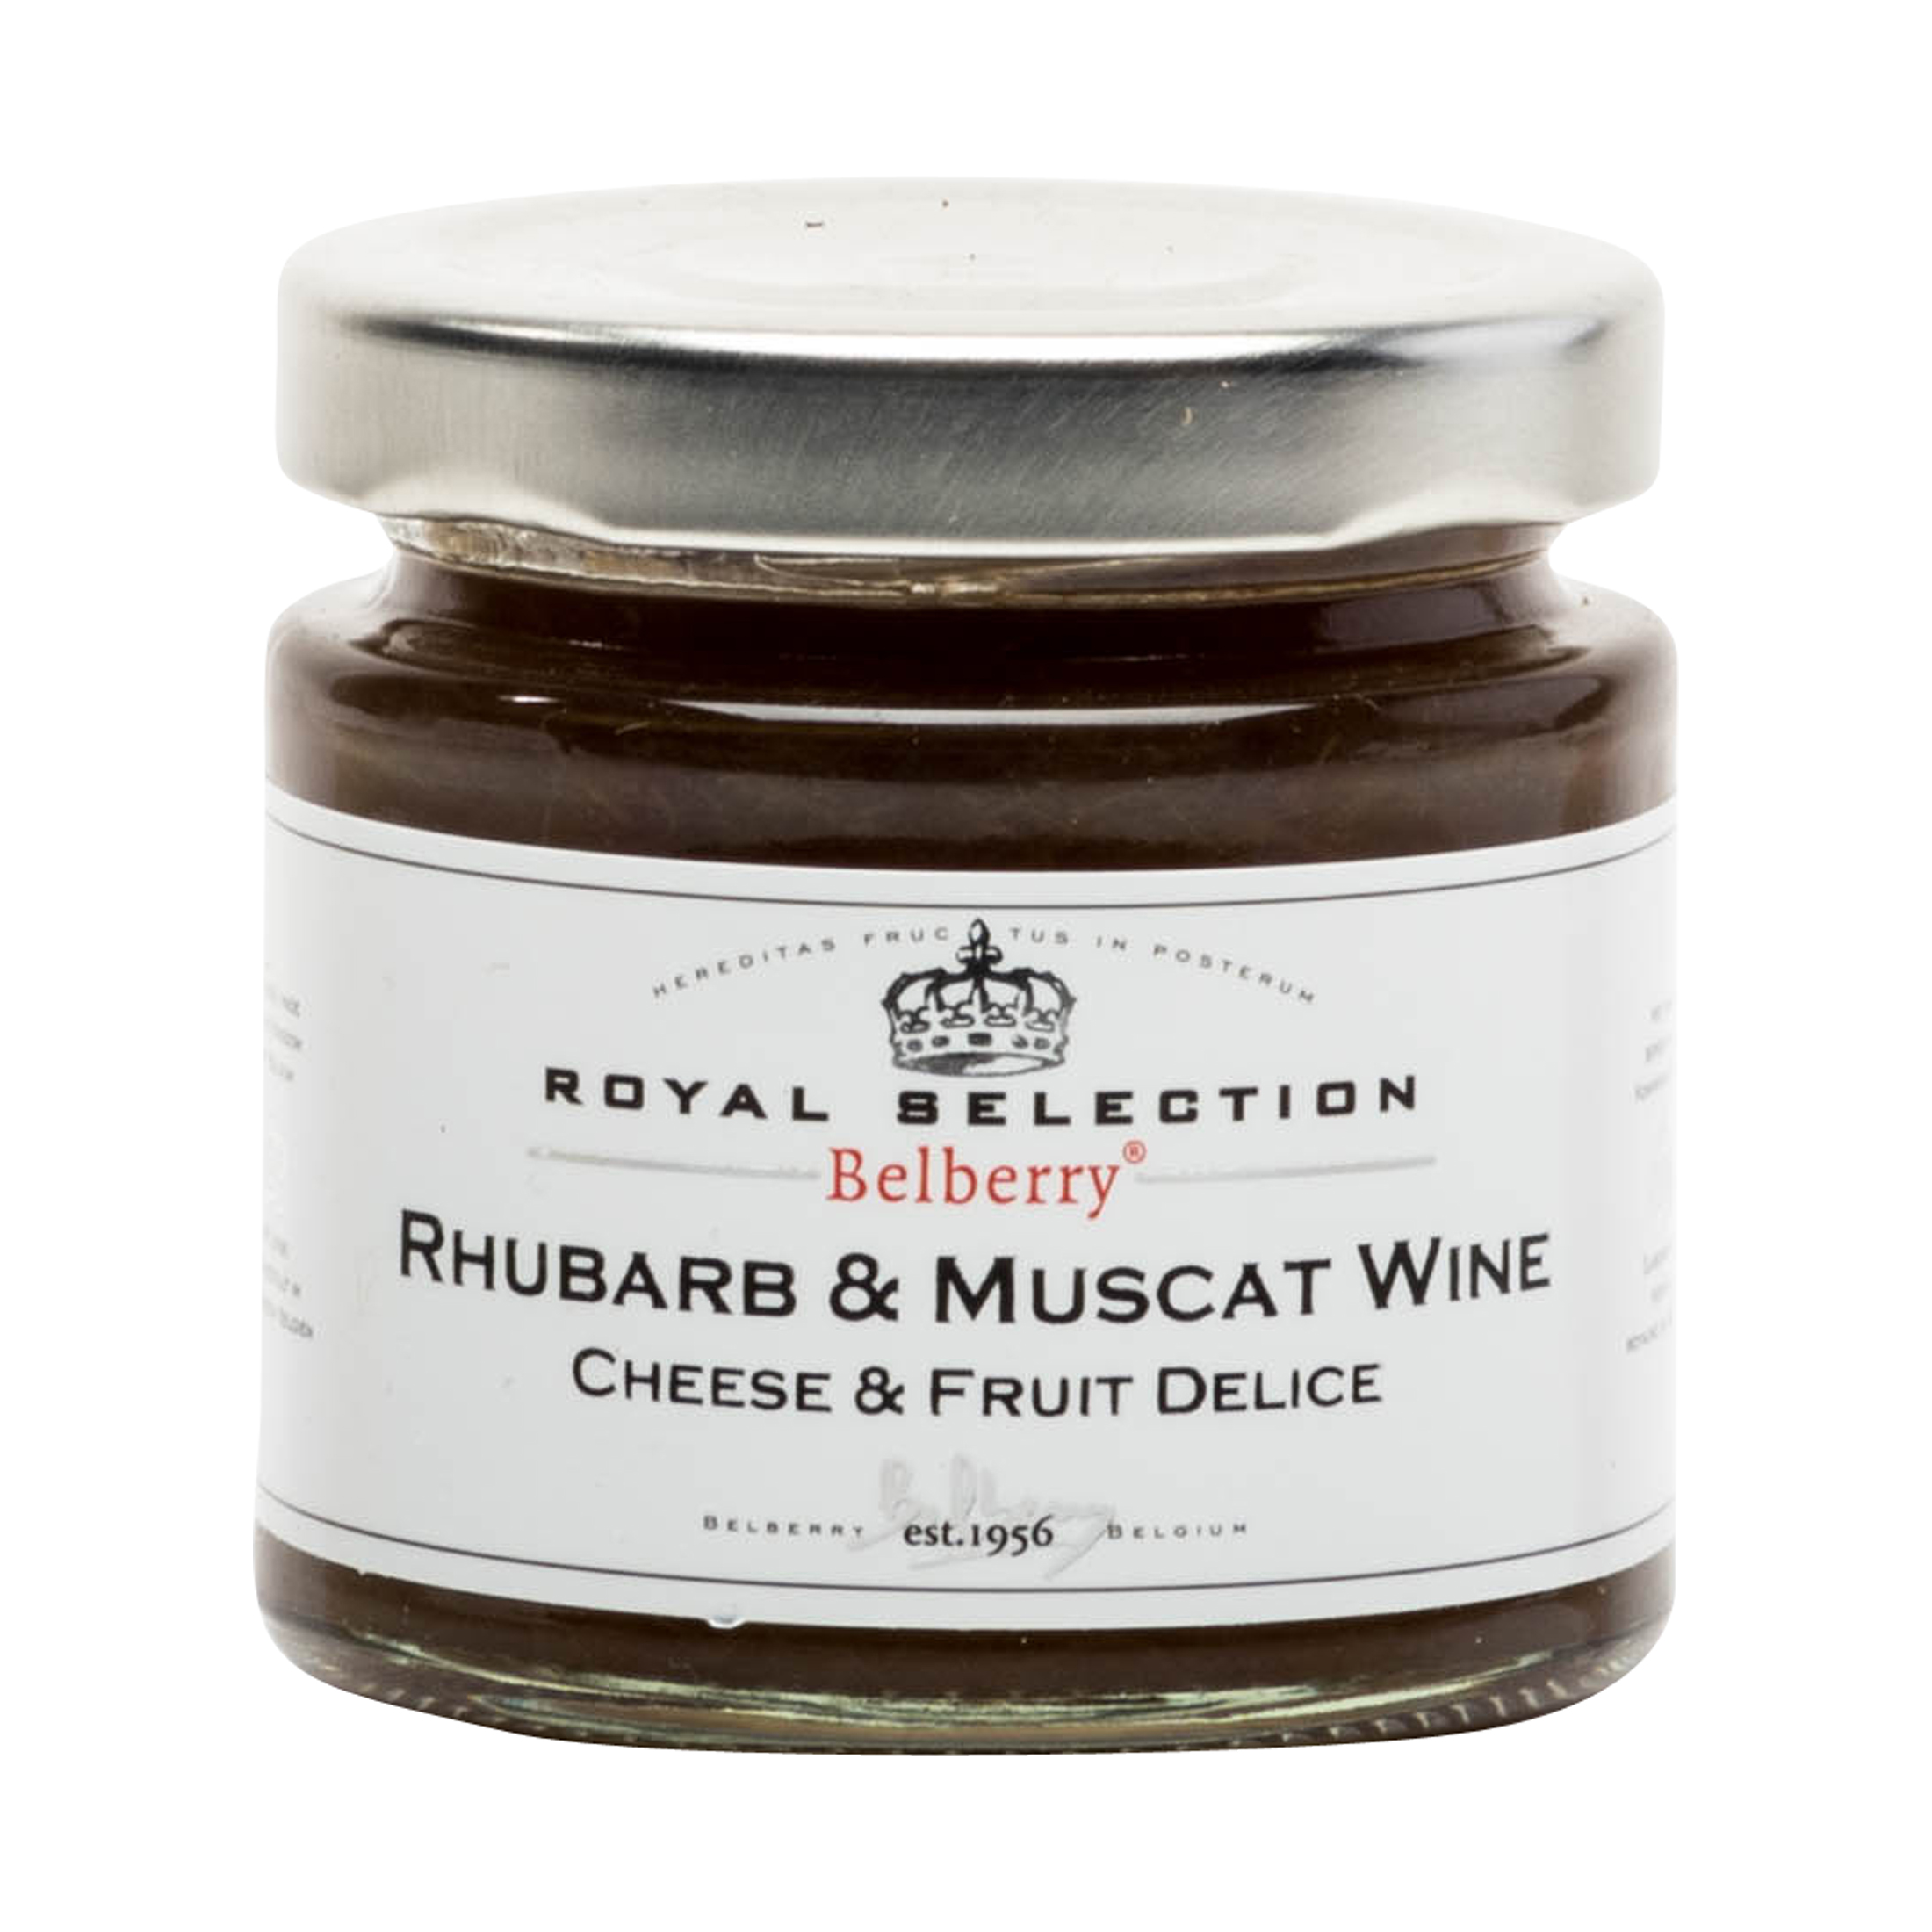 RHUBARB & MUSCAT WINE ROYAL SELECTION